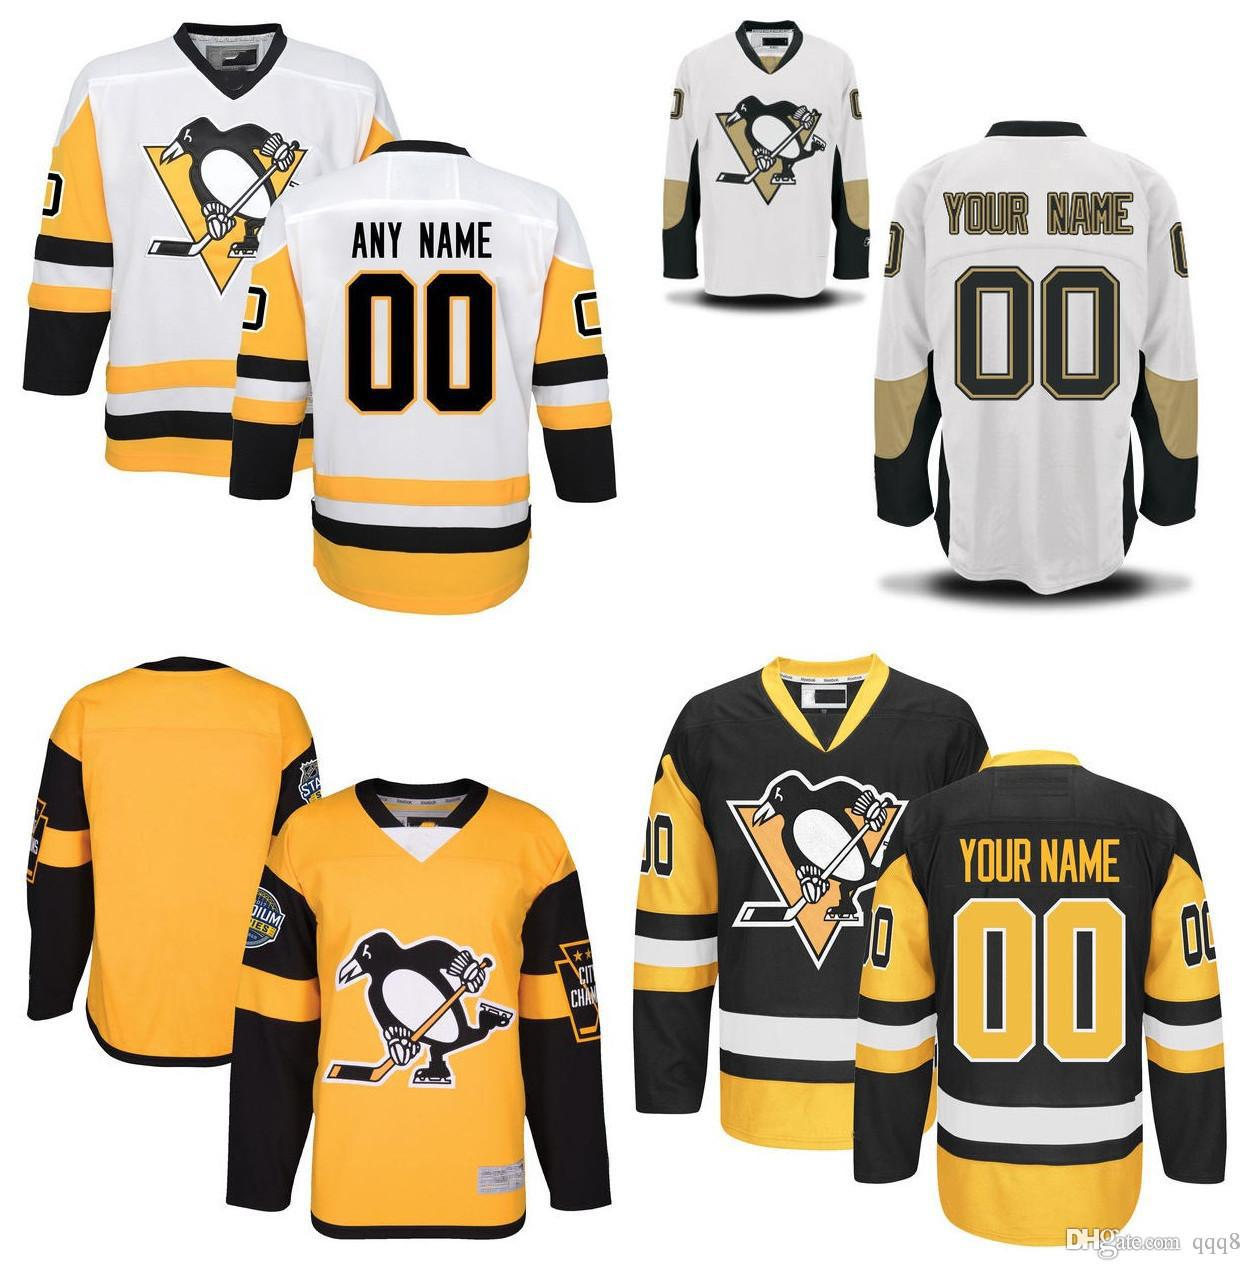 597d06fc8a4 2019 Customized Men Pittsburgh Penguins Jerseys Custom Stitched Any Name  Any Number Ice Hockey Jersey BlacK White Embroidery Logos Size 46 56 From  Qqq8, ...